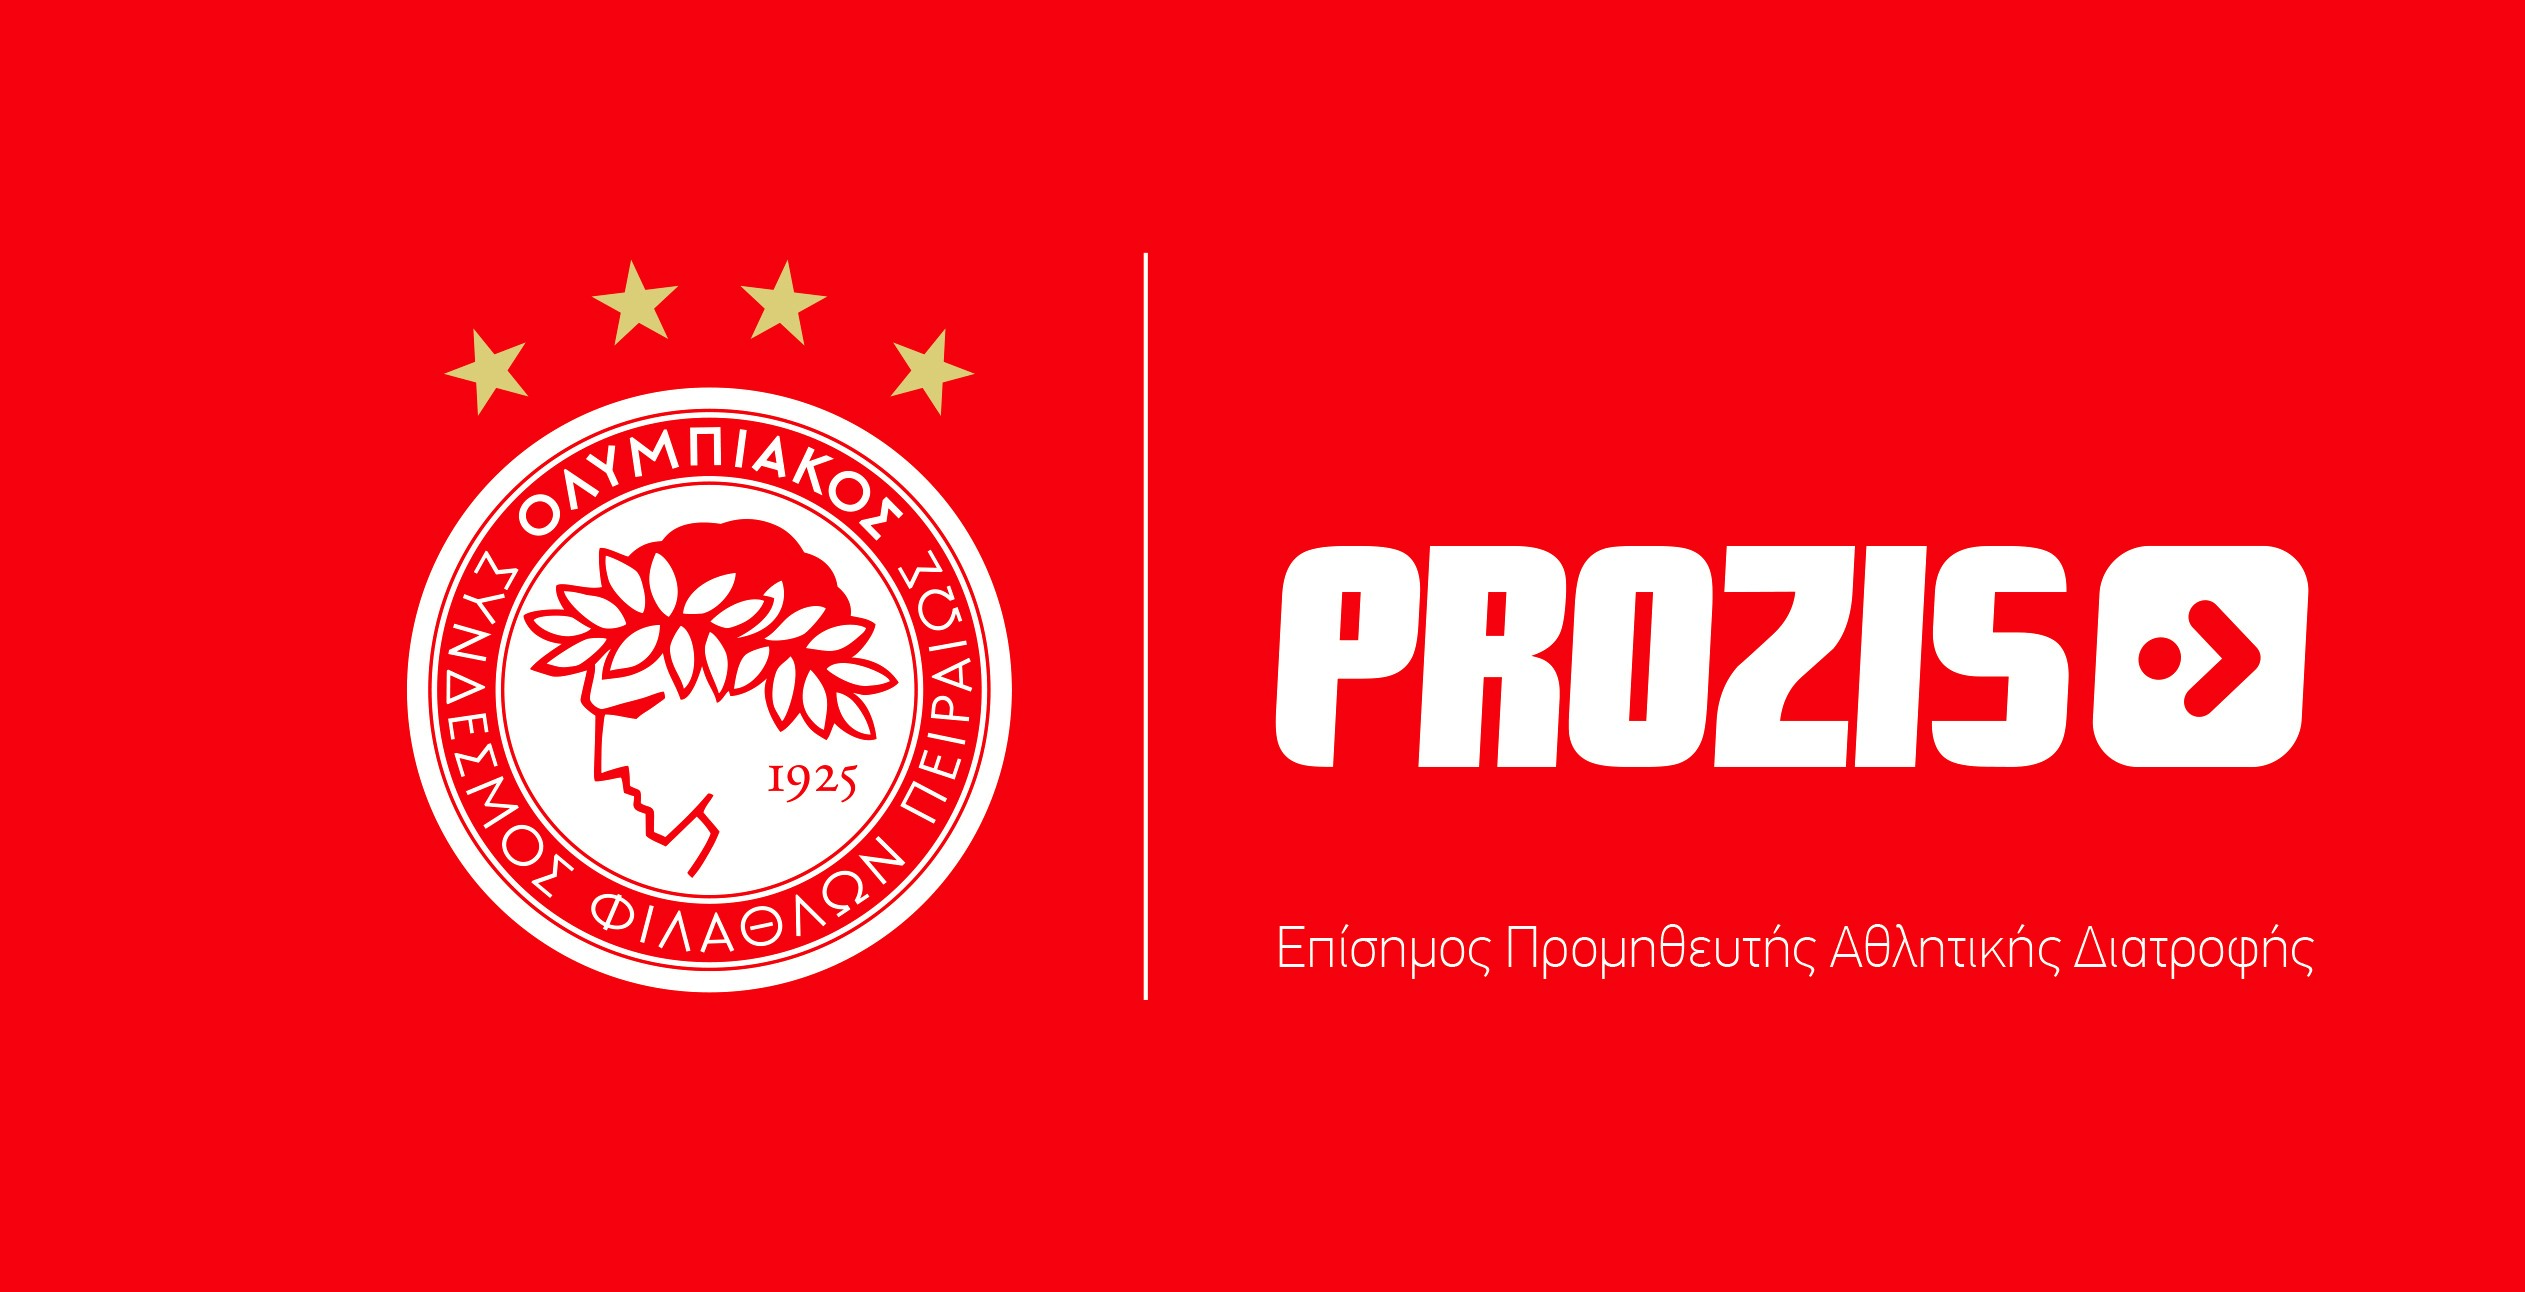 PROZIS is the new official nutrition partner of Olympiacos FC